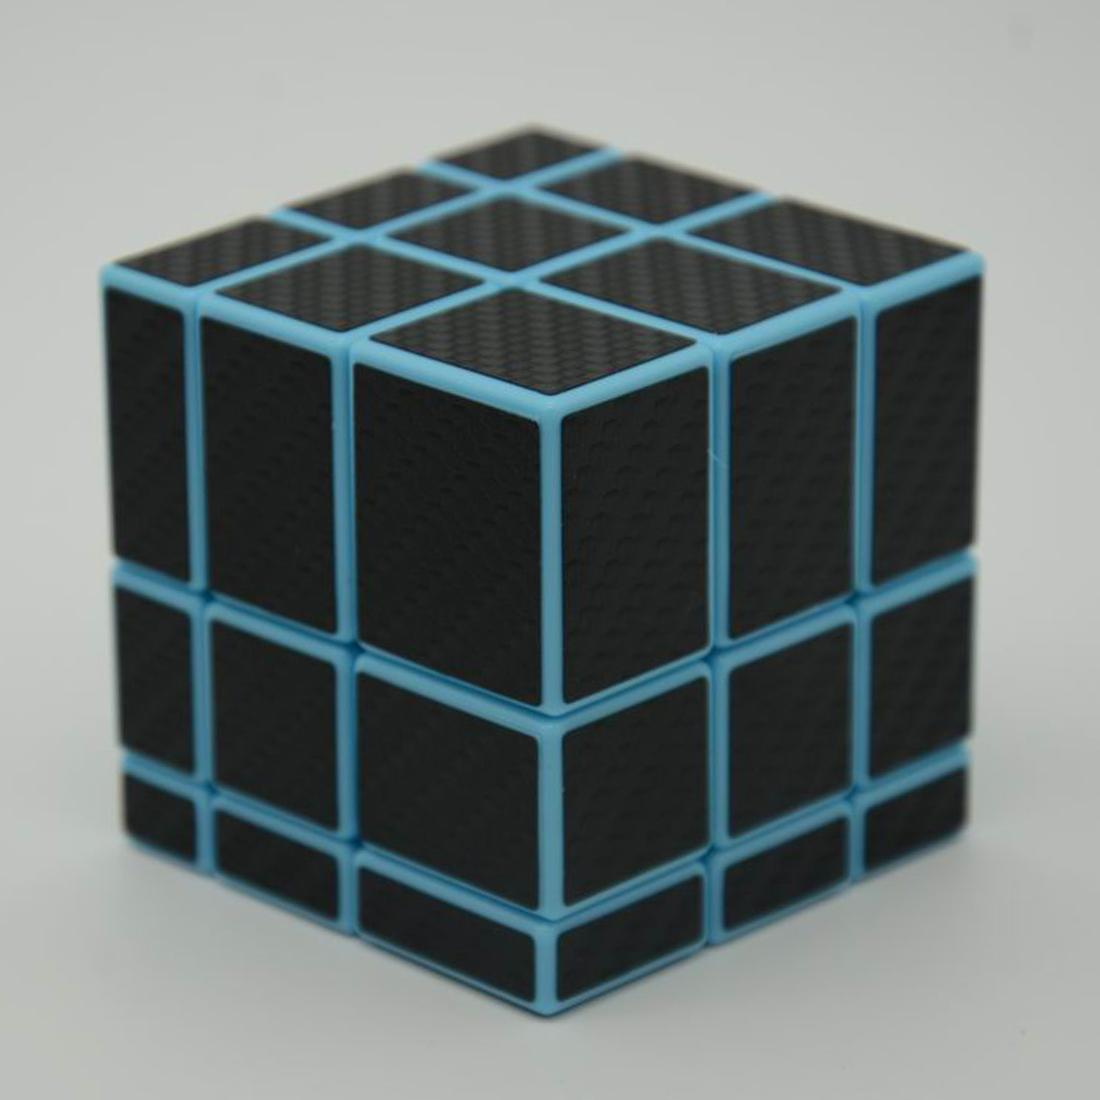 3x3x3 Mirror Blocks Carbon Fiber Sticker Magic Cube Puzzle Speed Cube 57mm